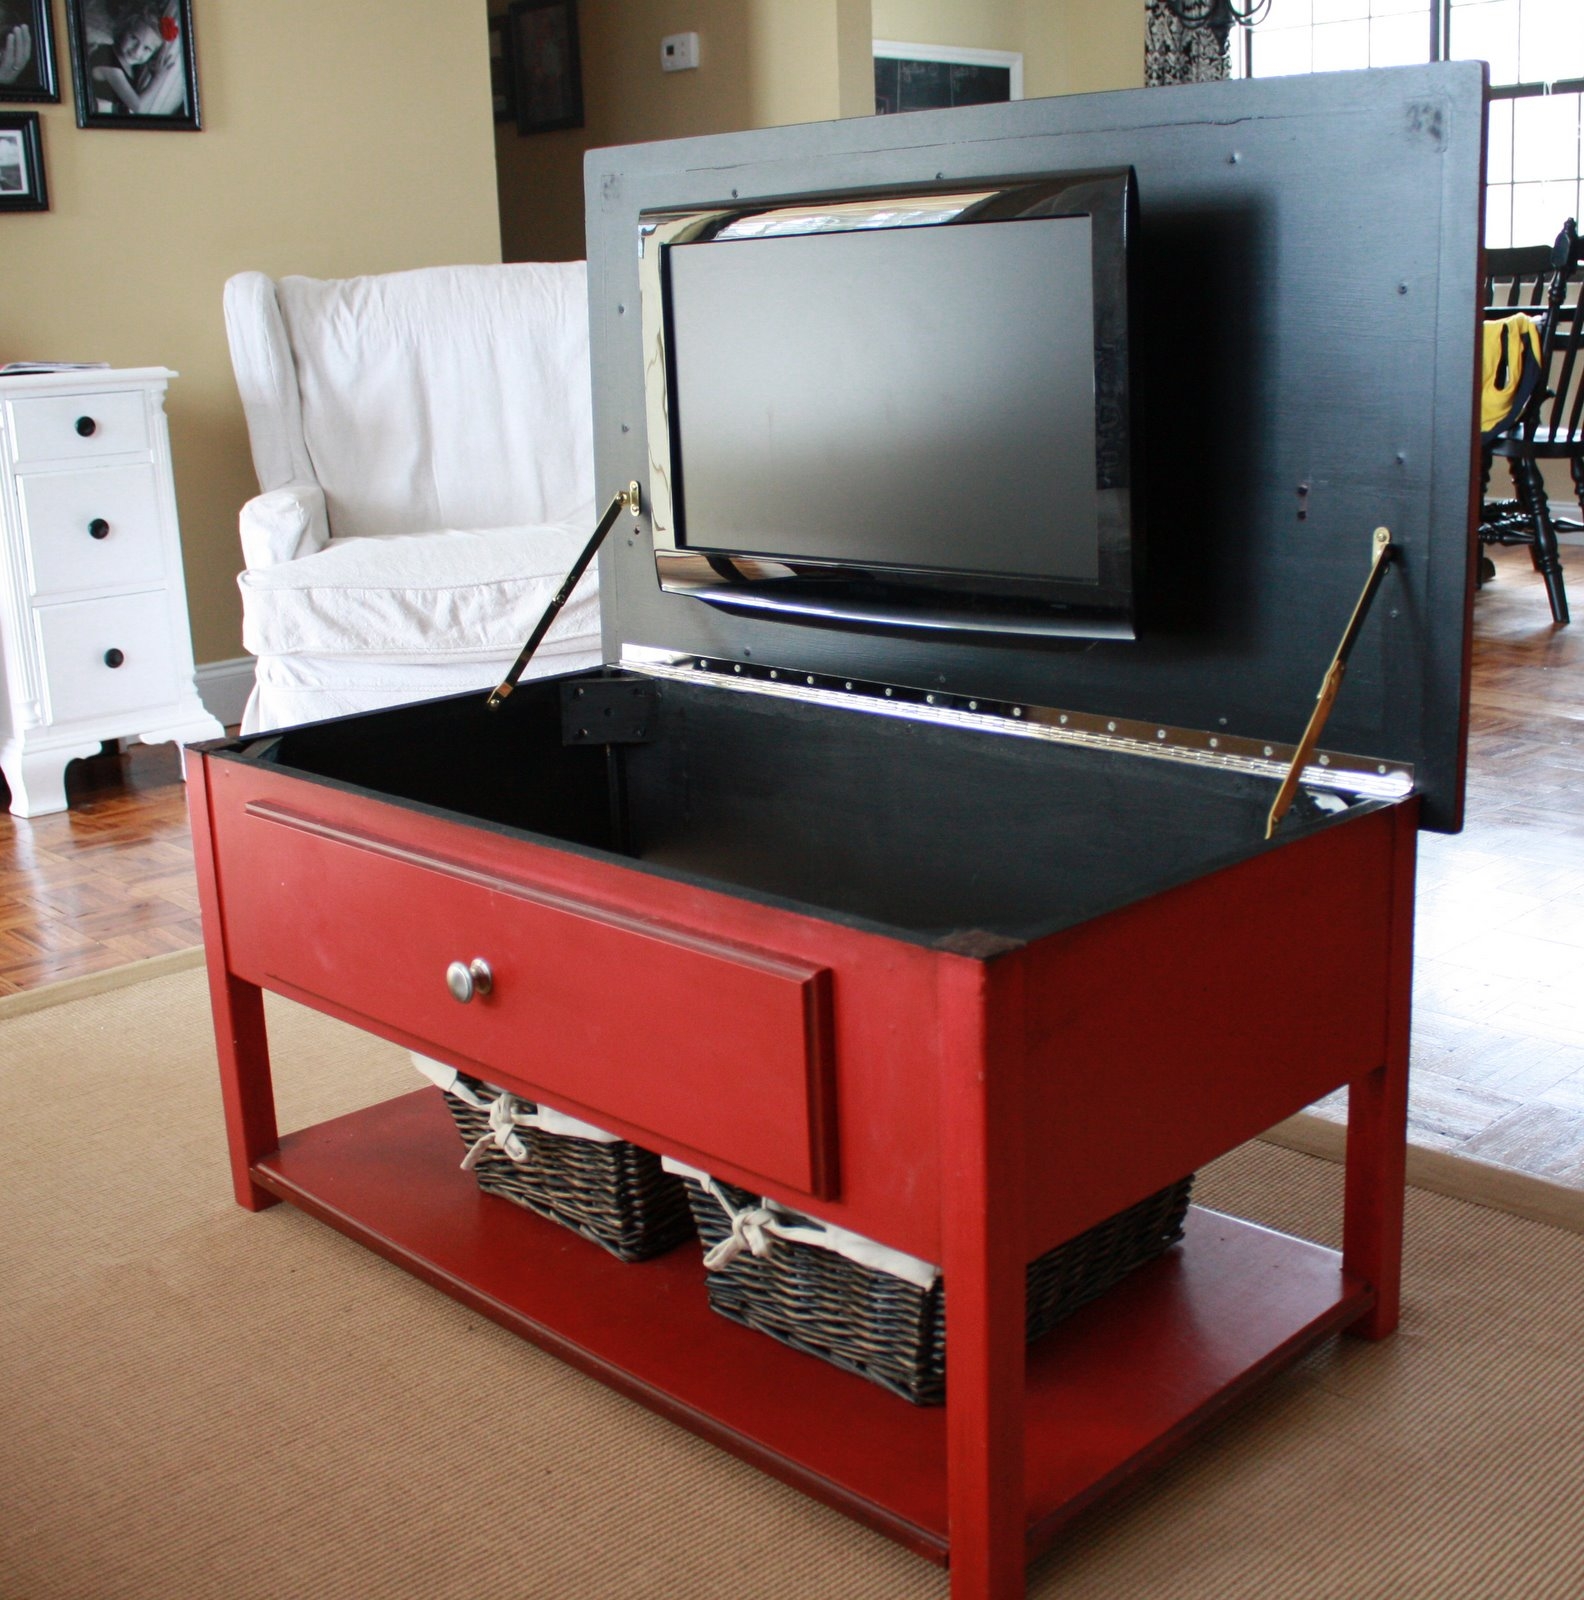 Tv Hidden In Coffee Table It 39s Just Laine The Amazing Red Coffee Table